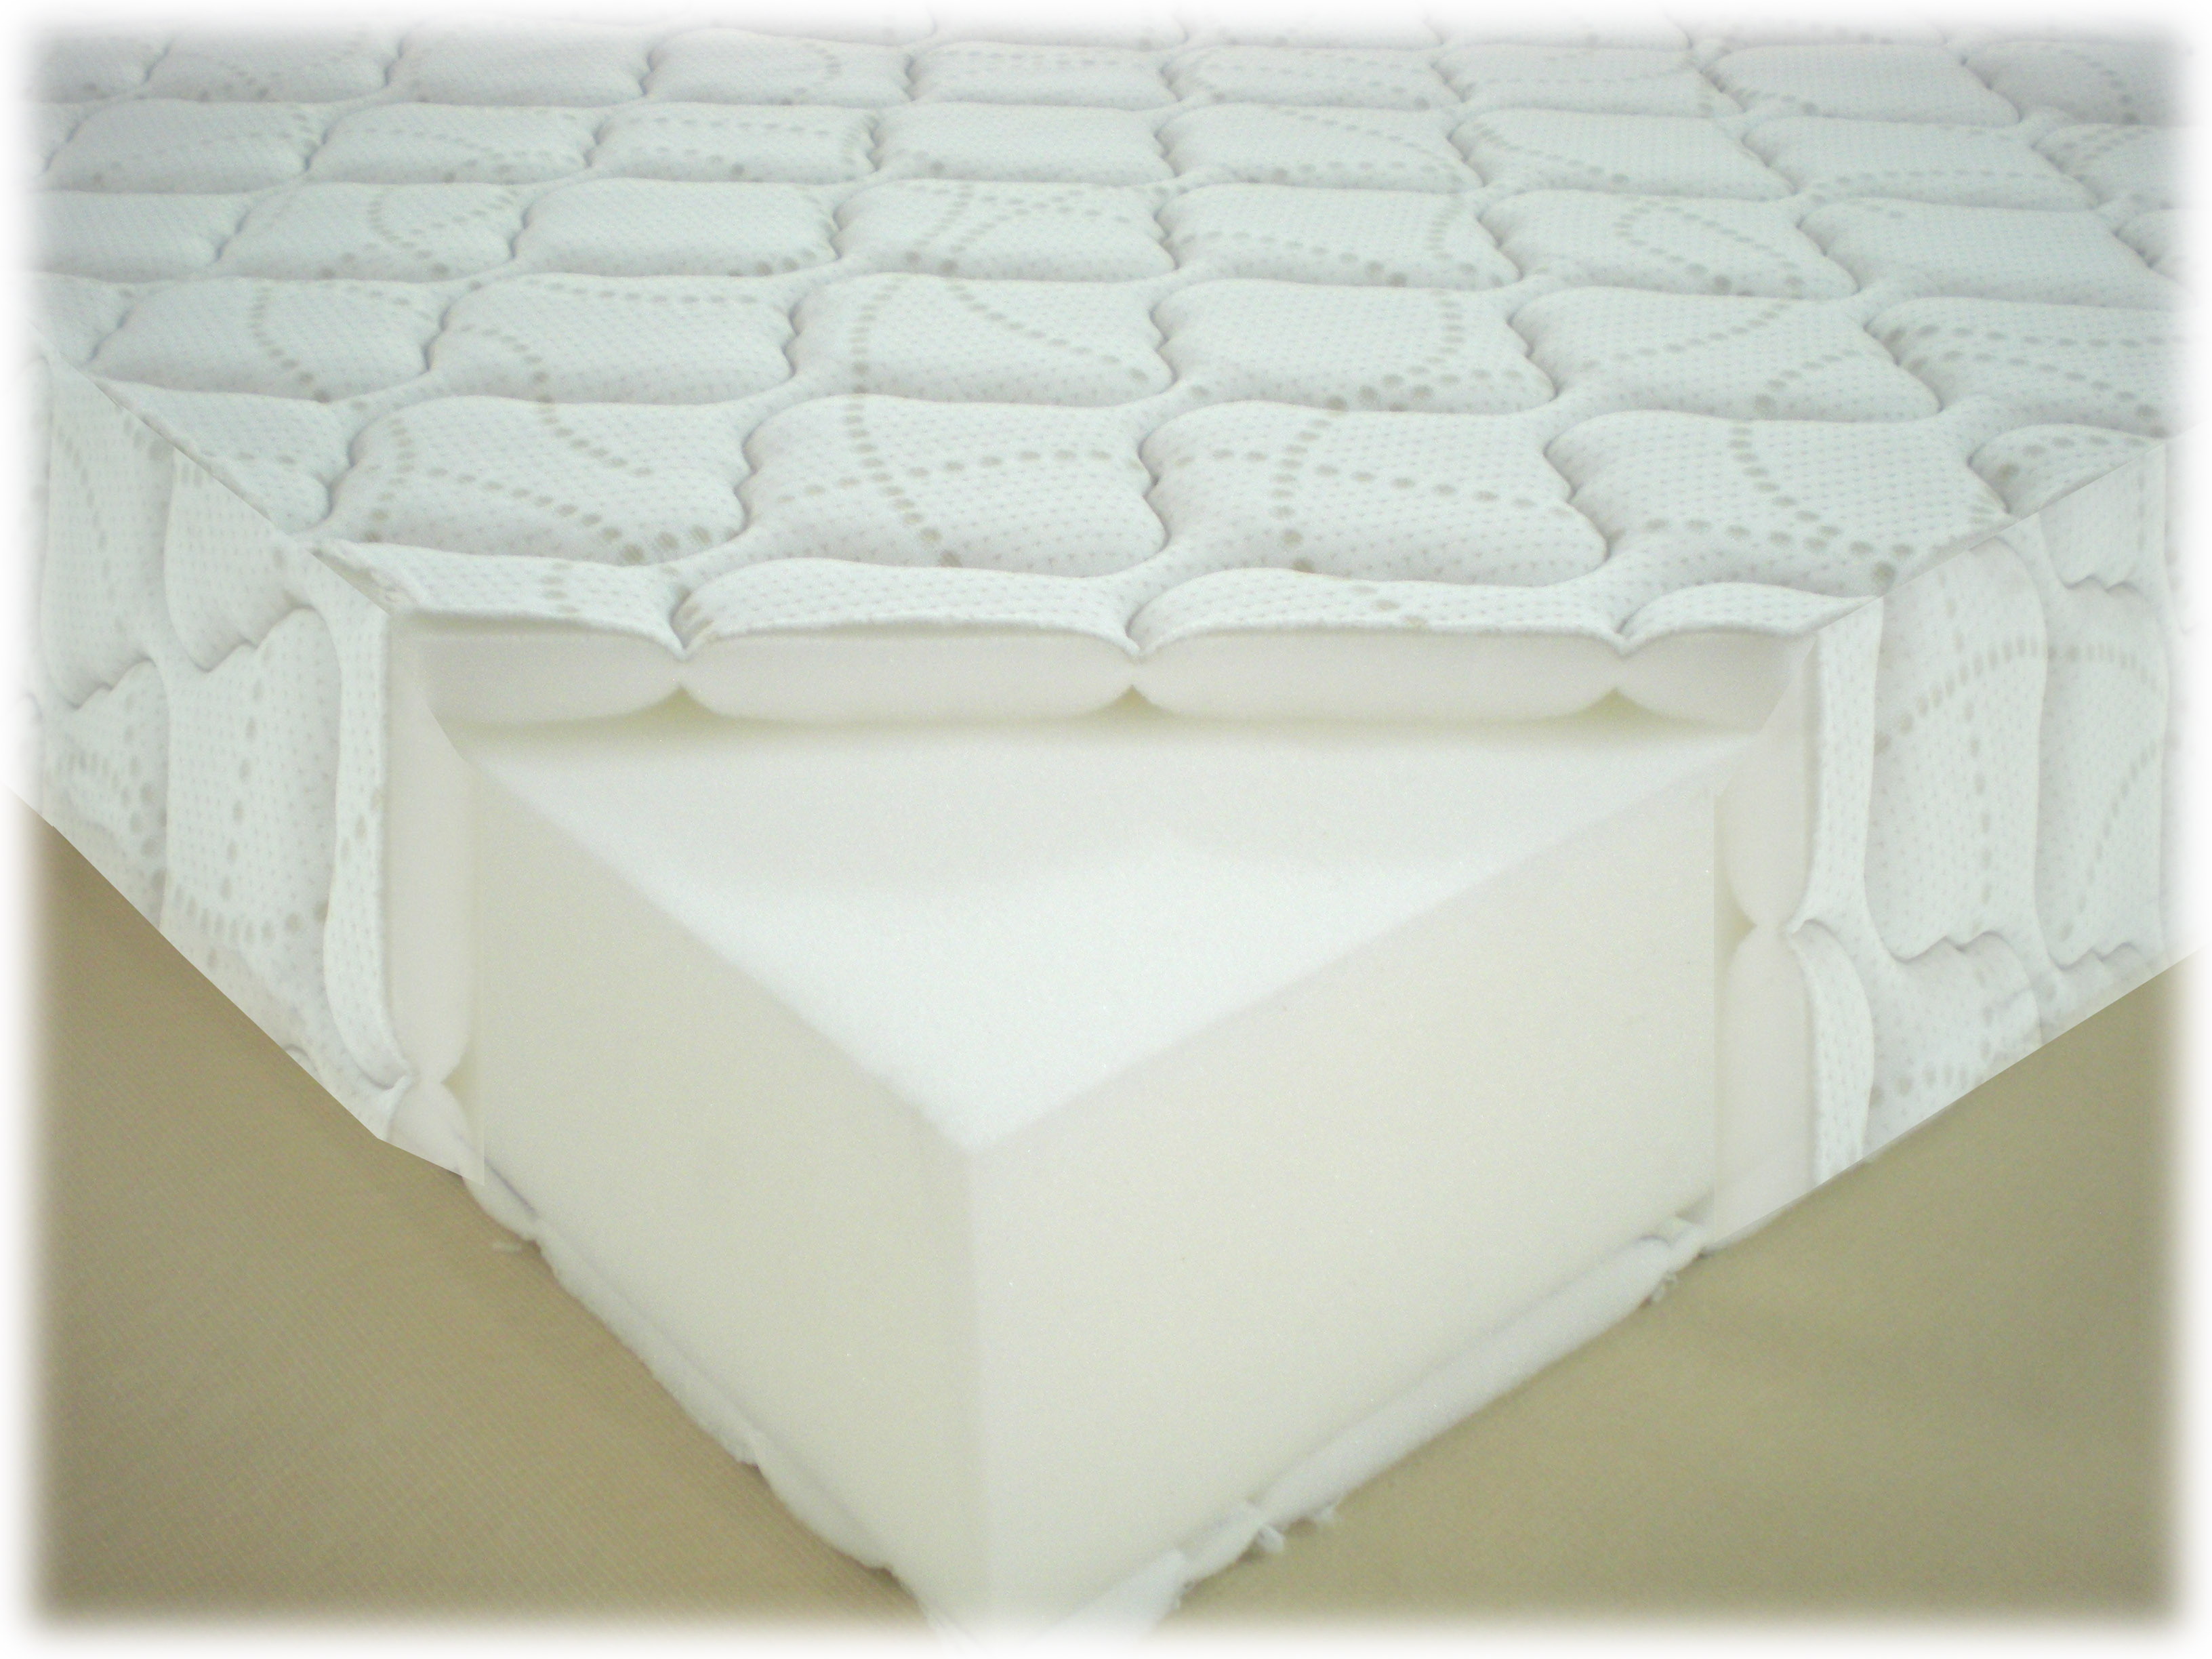 Paramount Psr6074 60 X 74 Premium Pillowtop Mattress